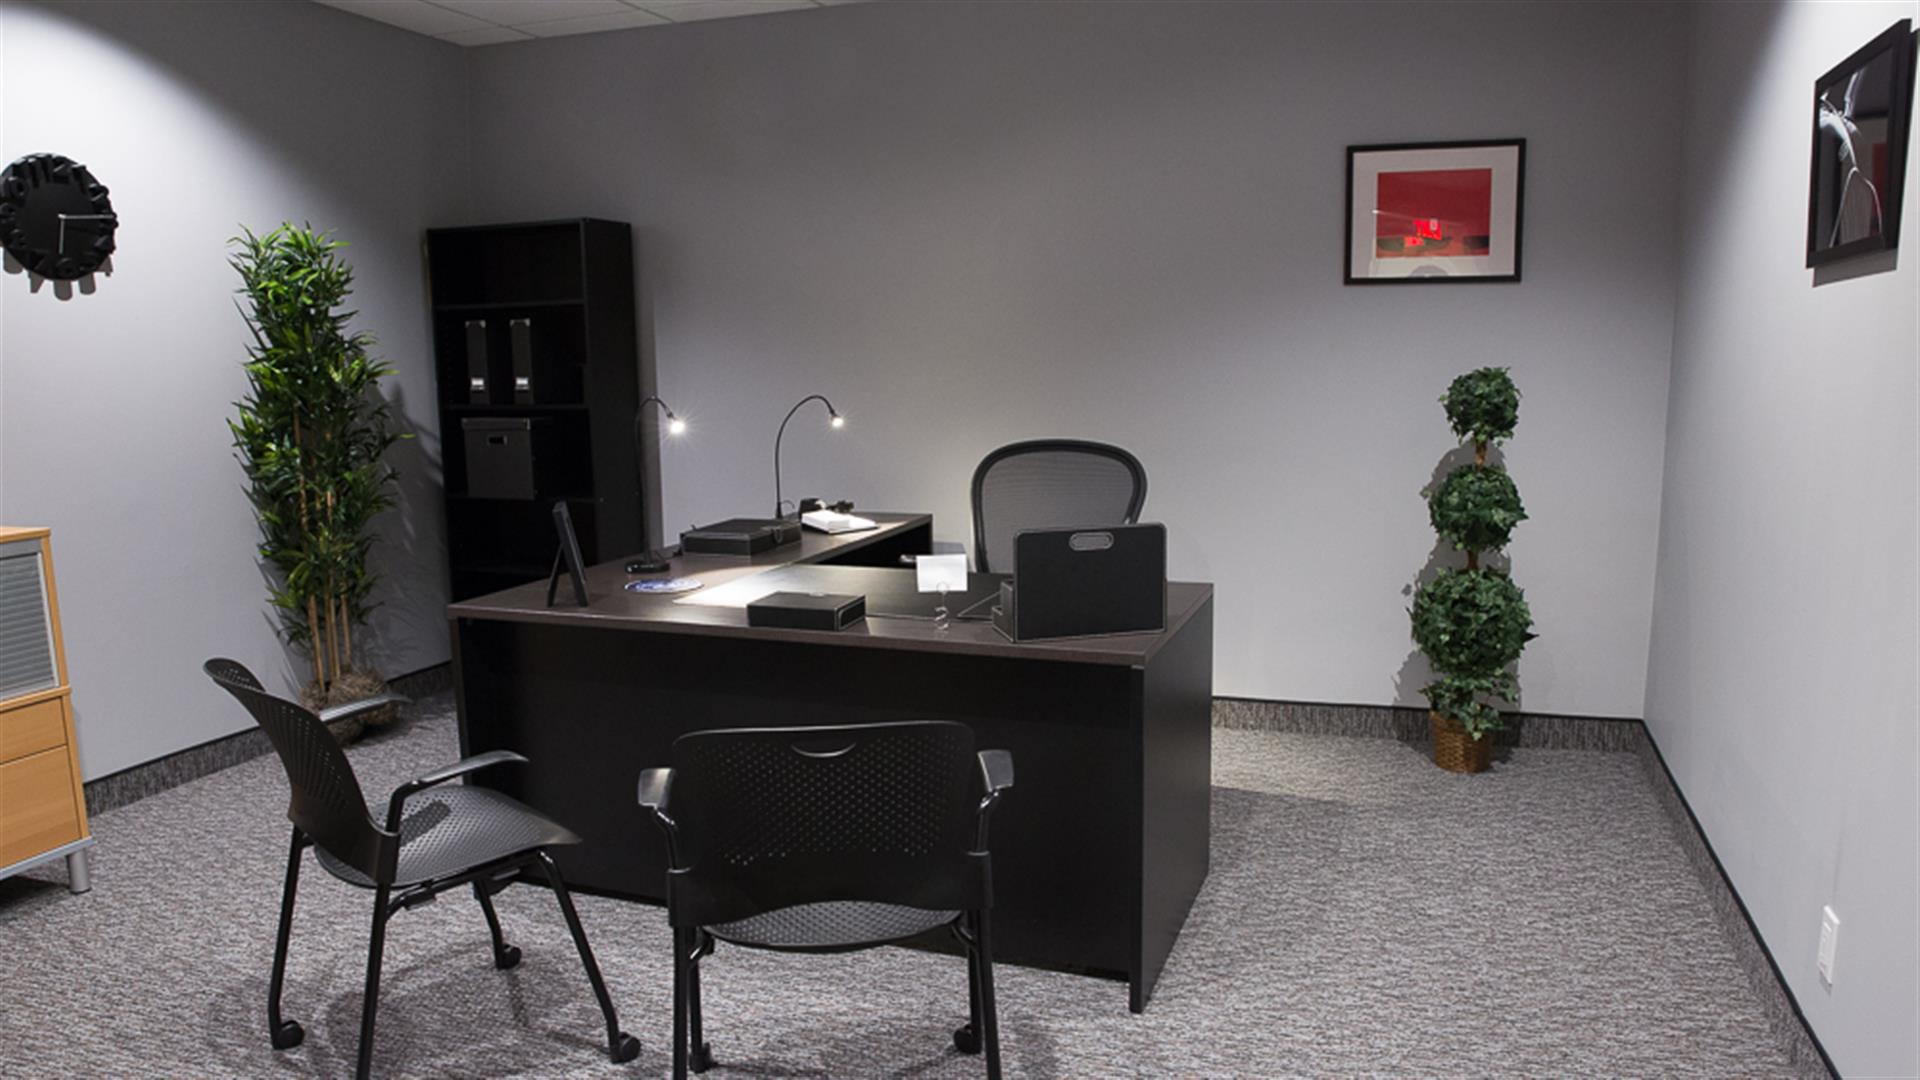 Instant Office - East Northport, NY - Private Office